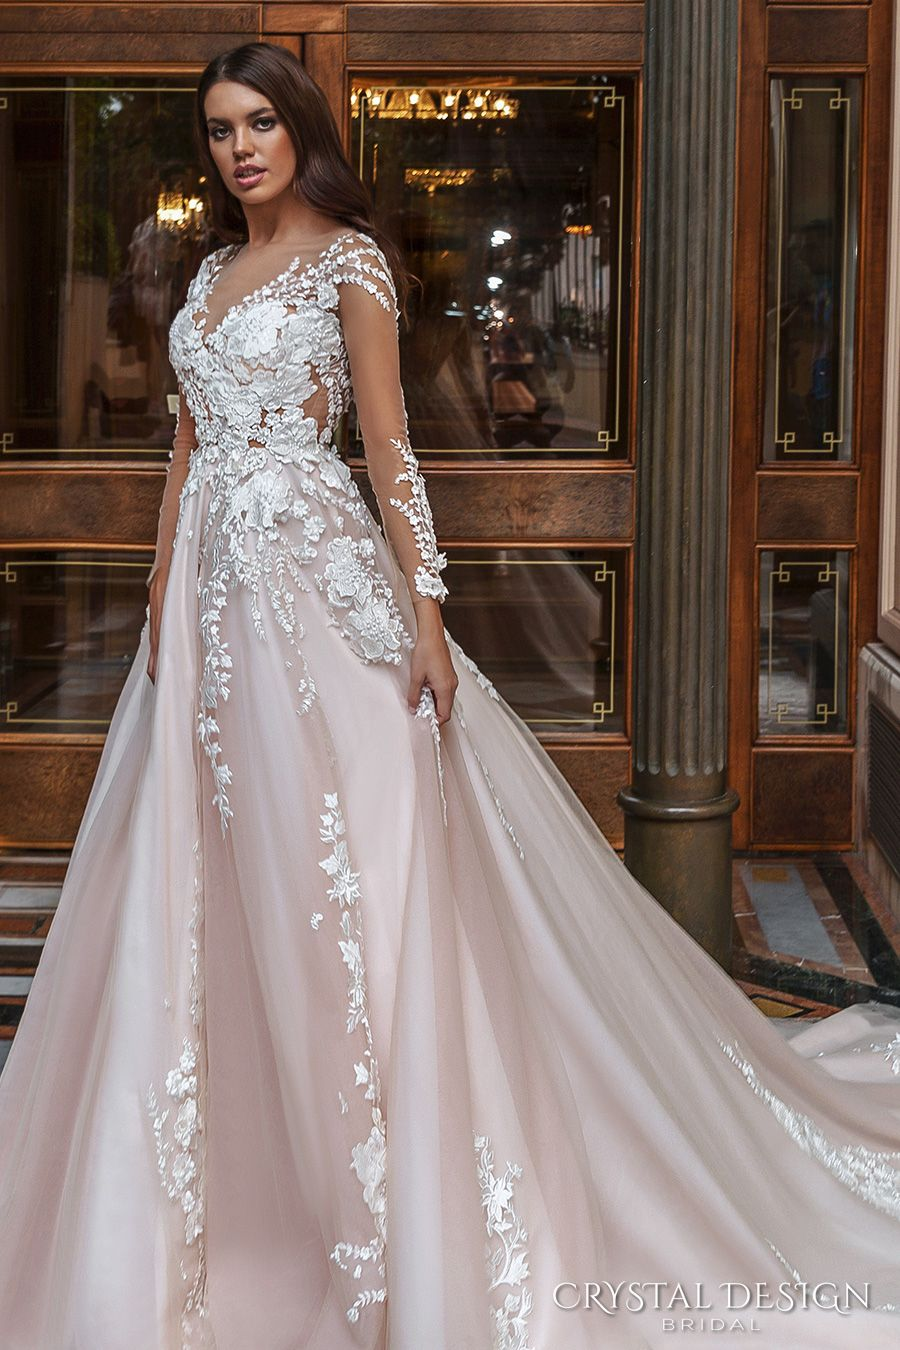 Crystal design 2017 wedding dresses haute couture bridal for Long sleeve blush wedding dress